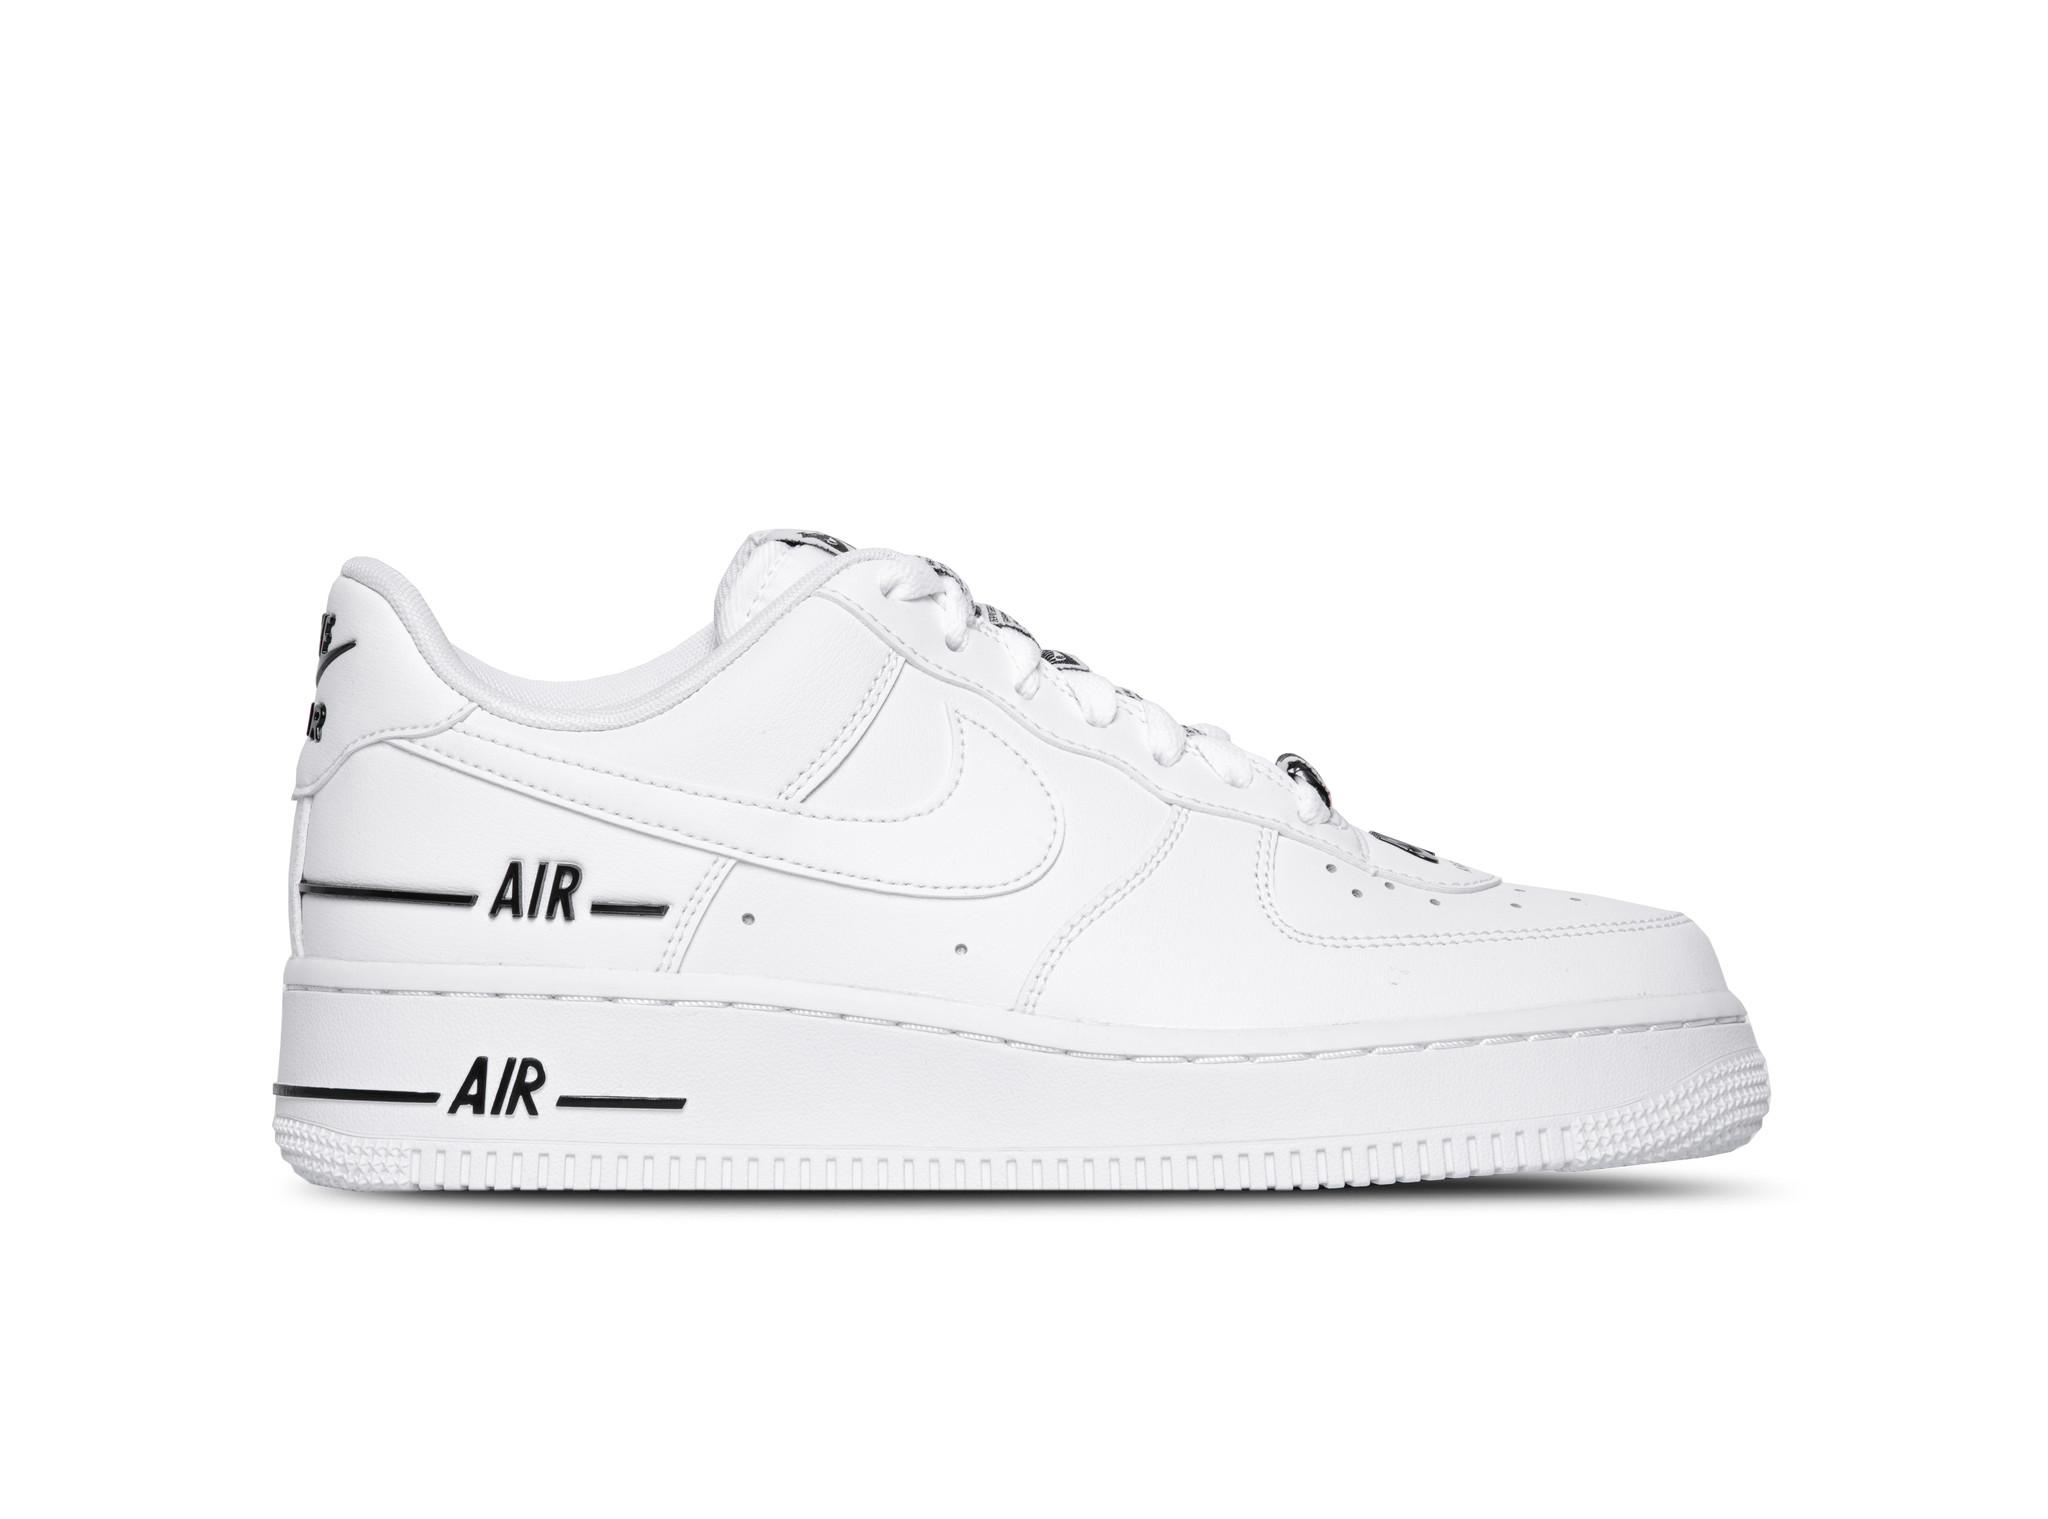 Nike Air Force 1 LV8 3 White White Black CJ4092 100 | Bruut